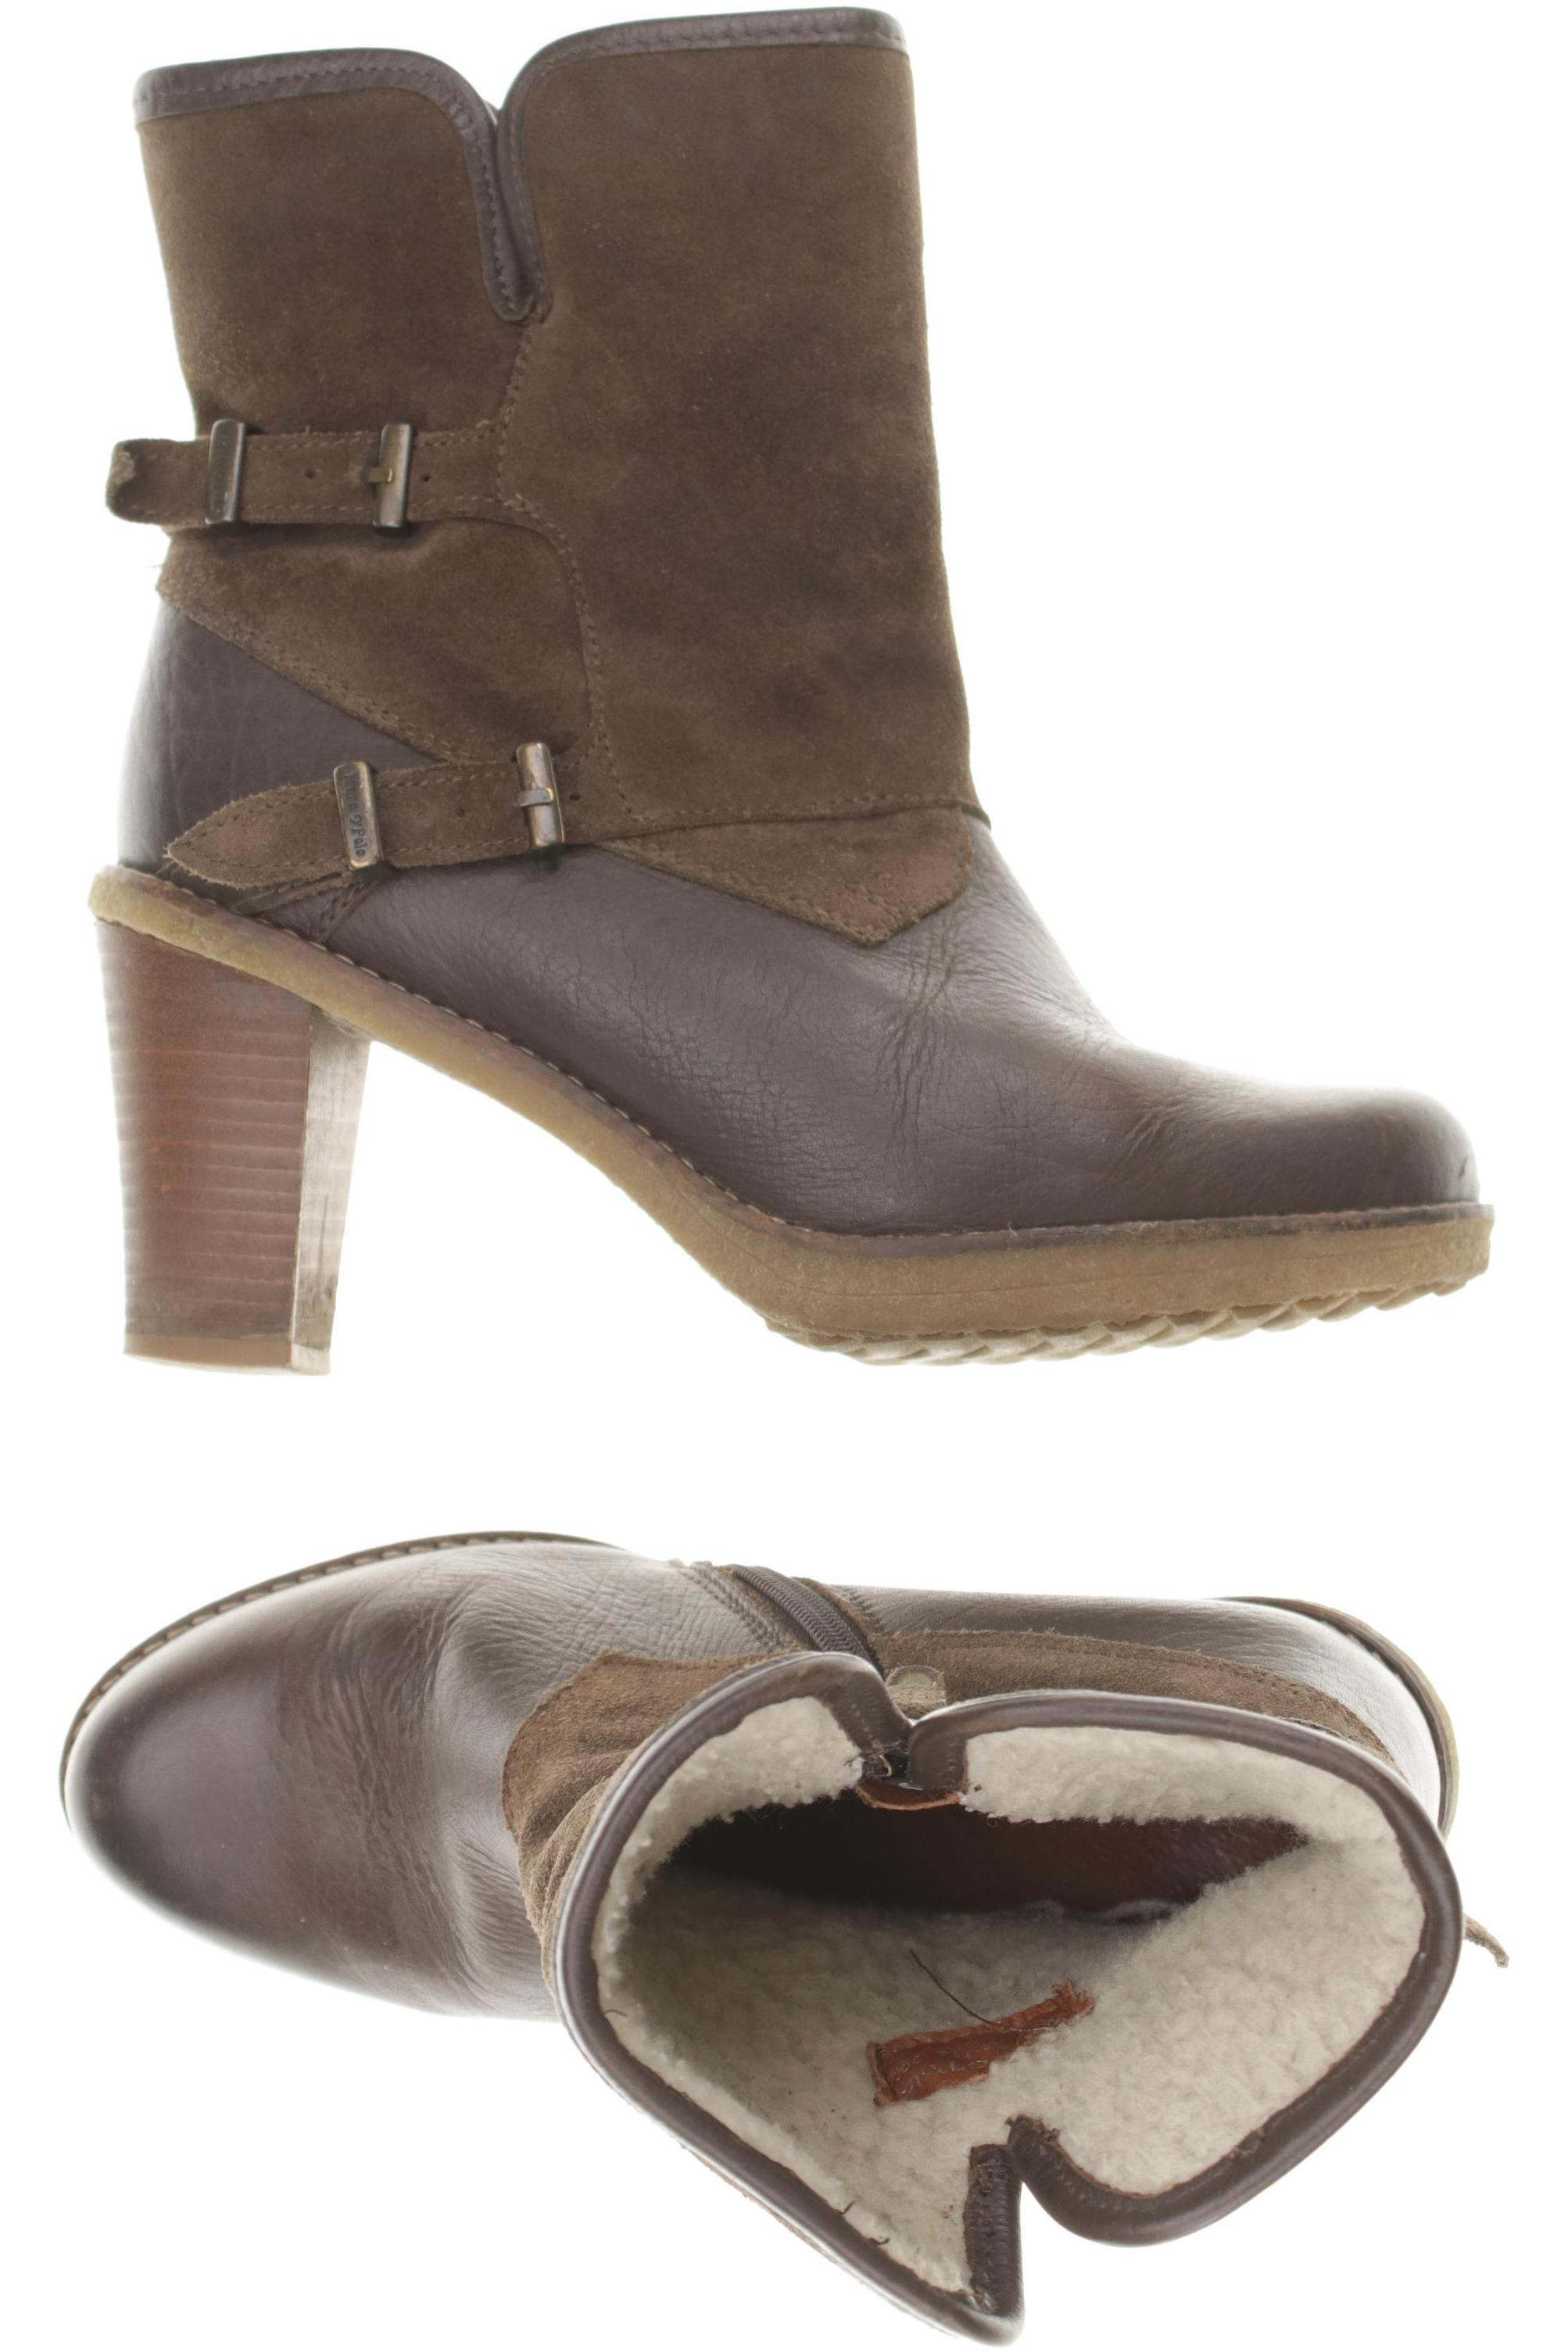 Marc O Polo Damen Stiefelette DE 38 Second Hand kaufen